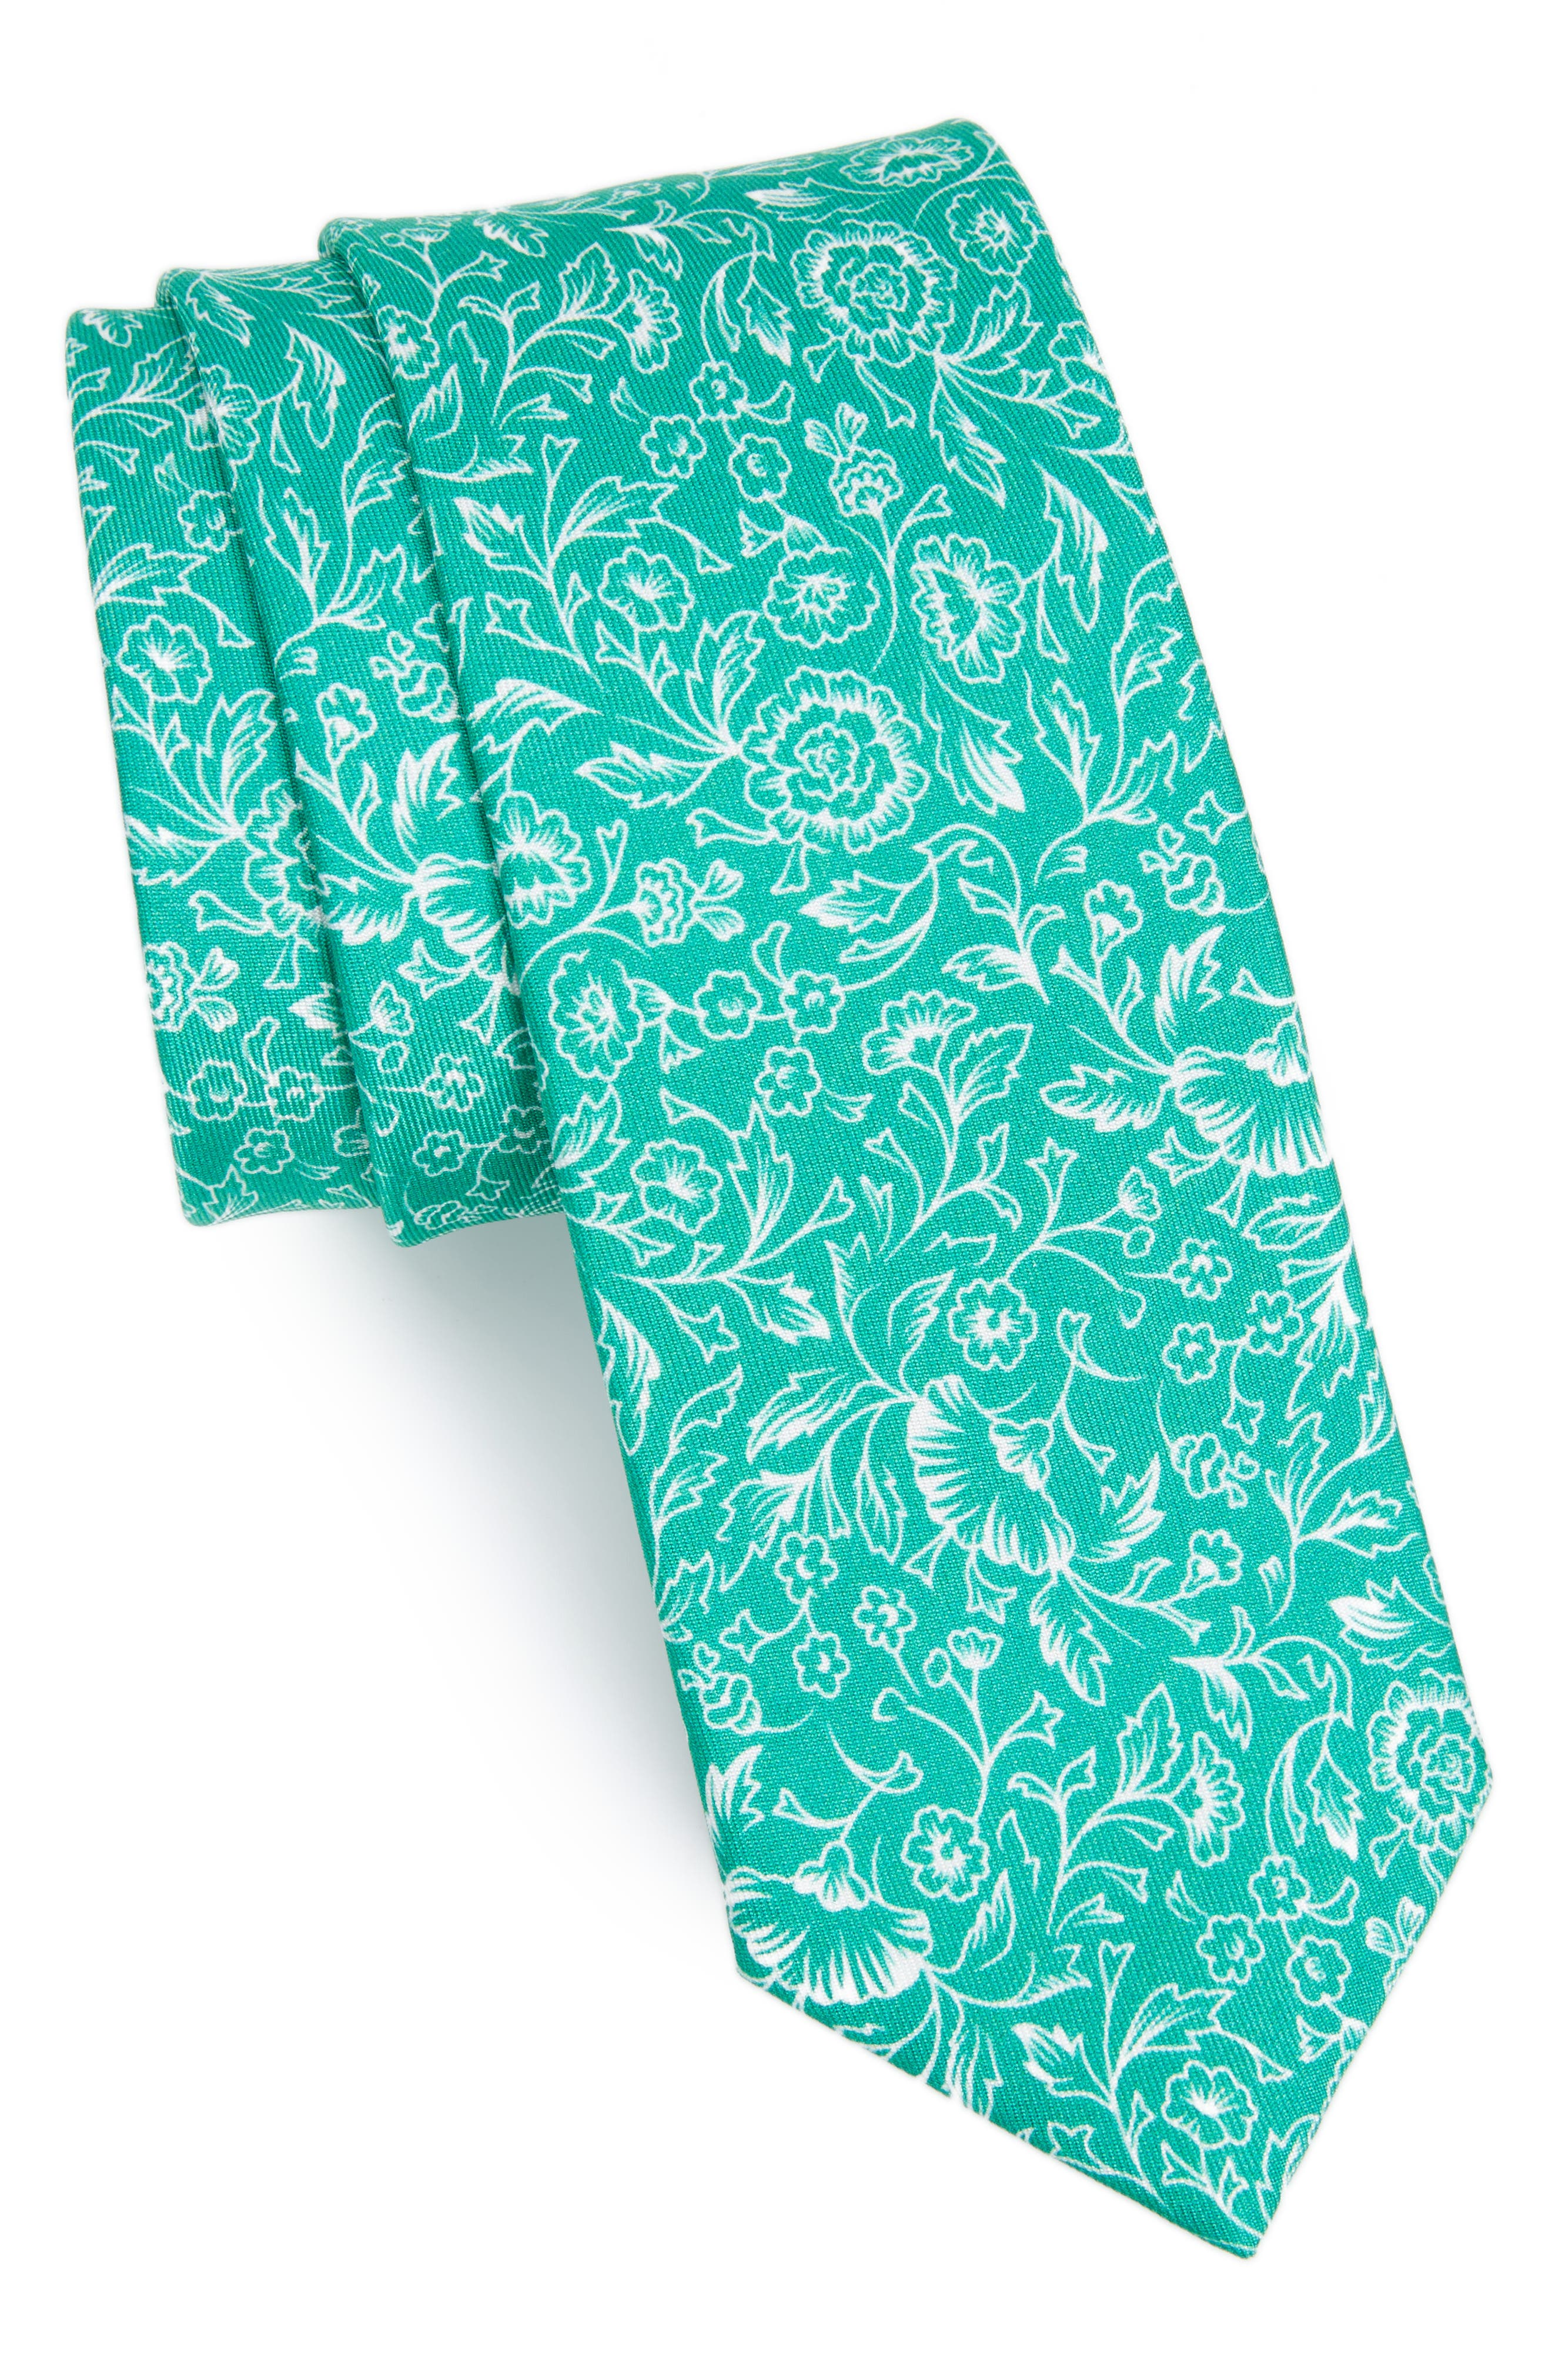 The Tie Bar Bracken Blossom Silk Tie